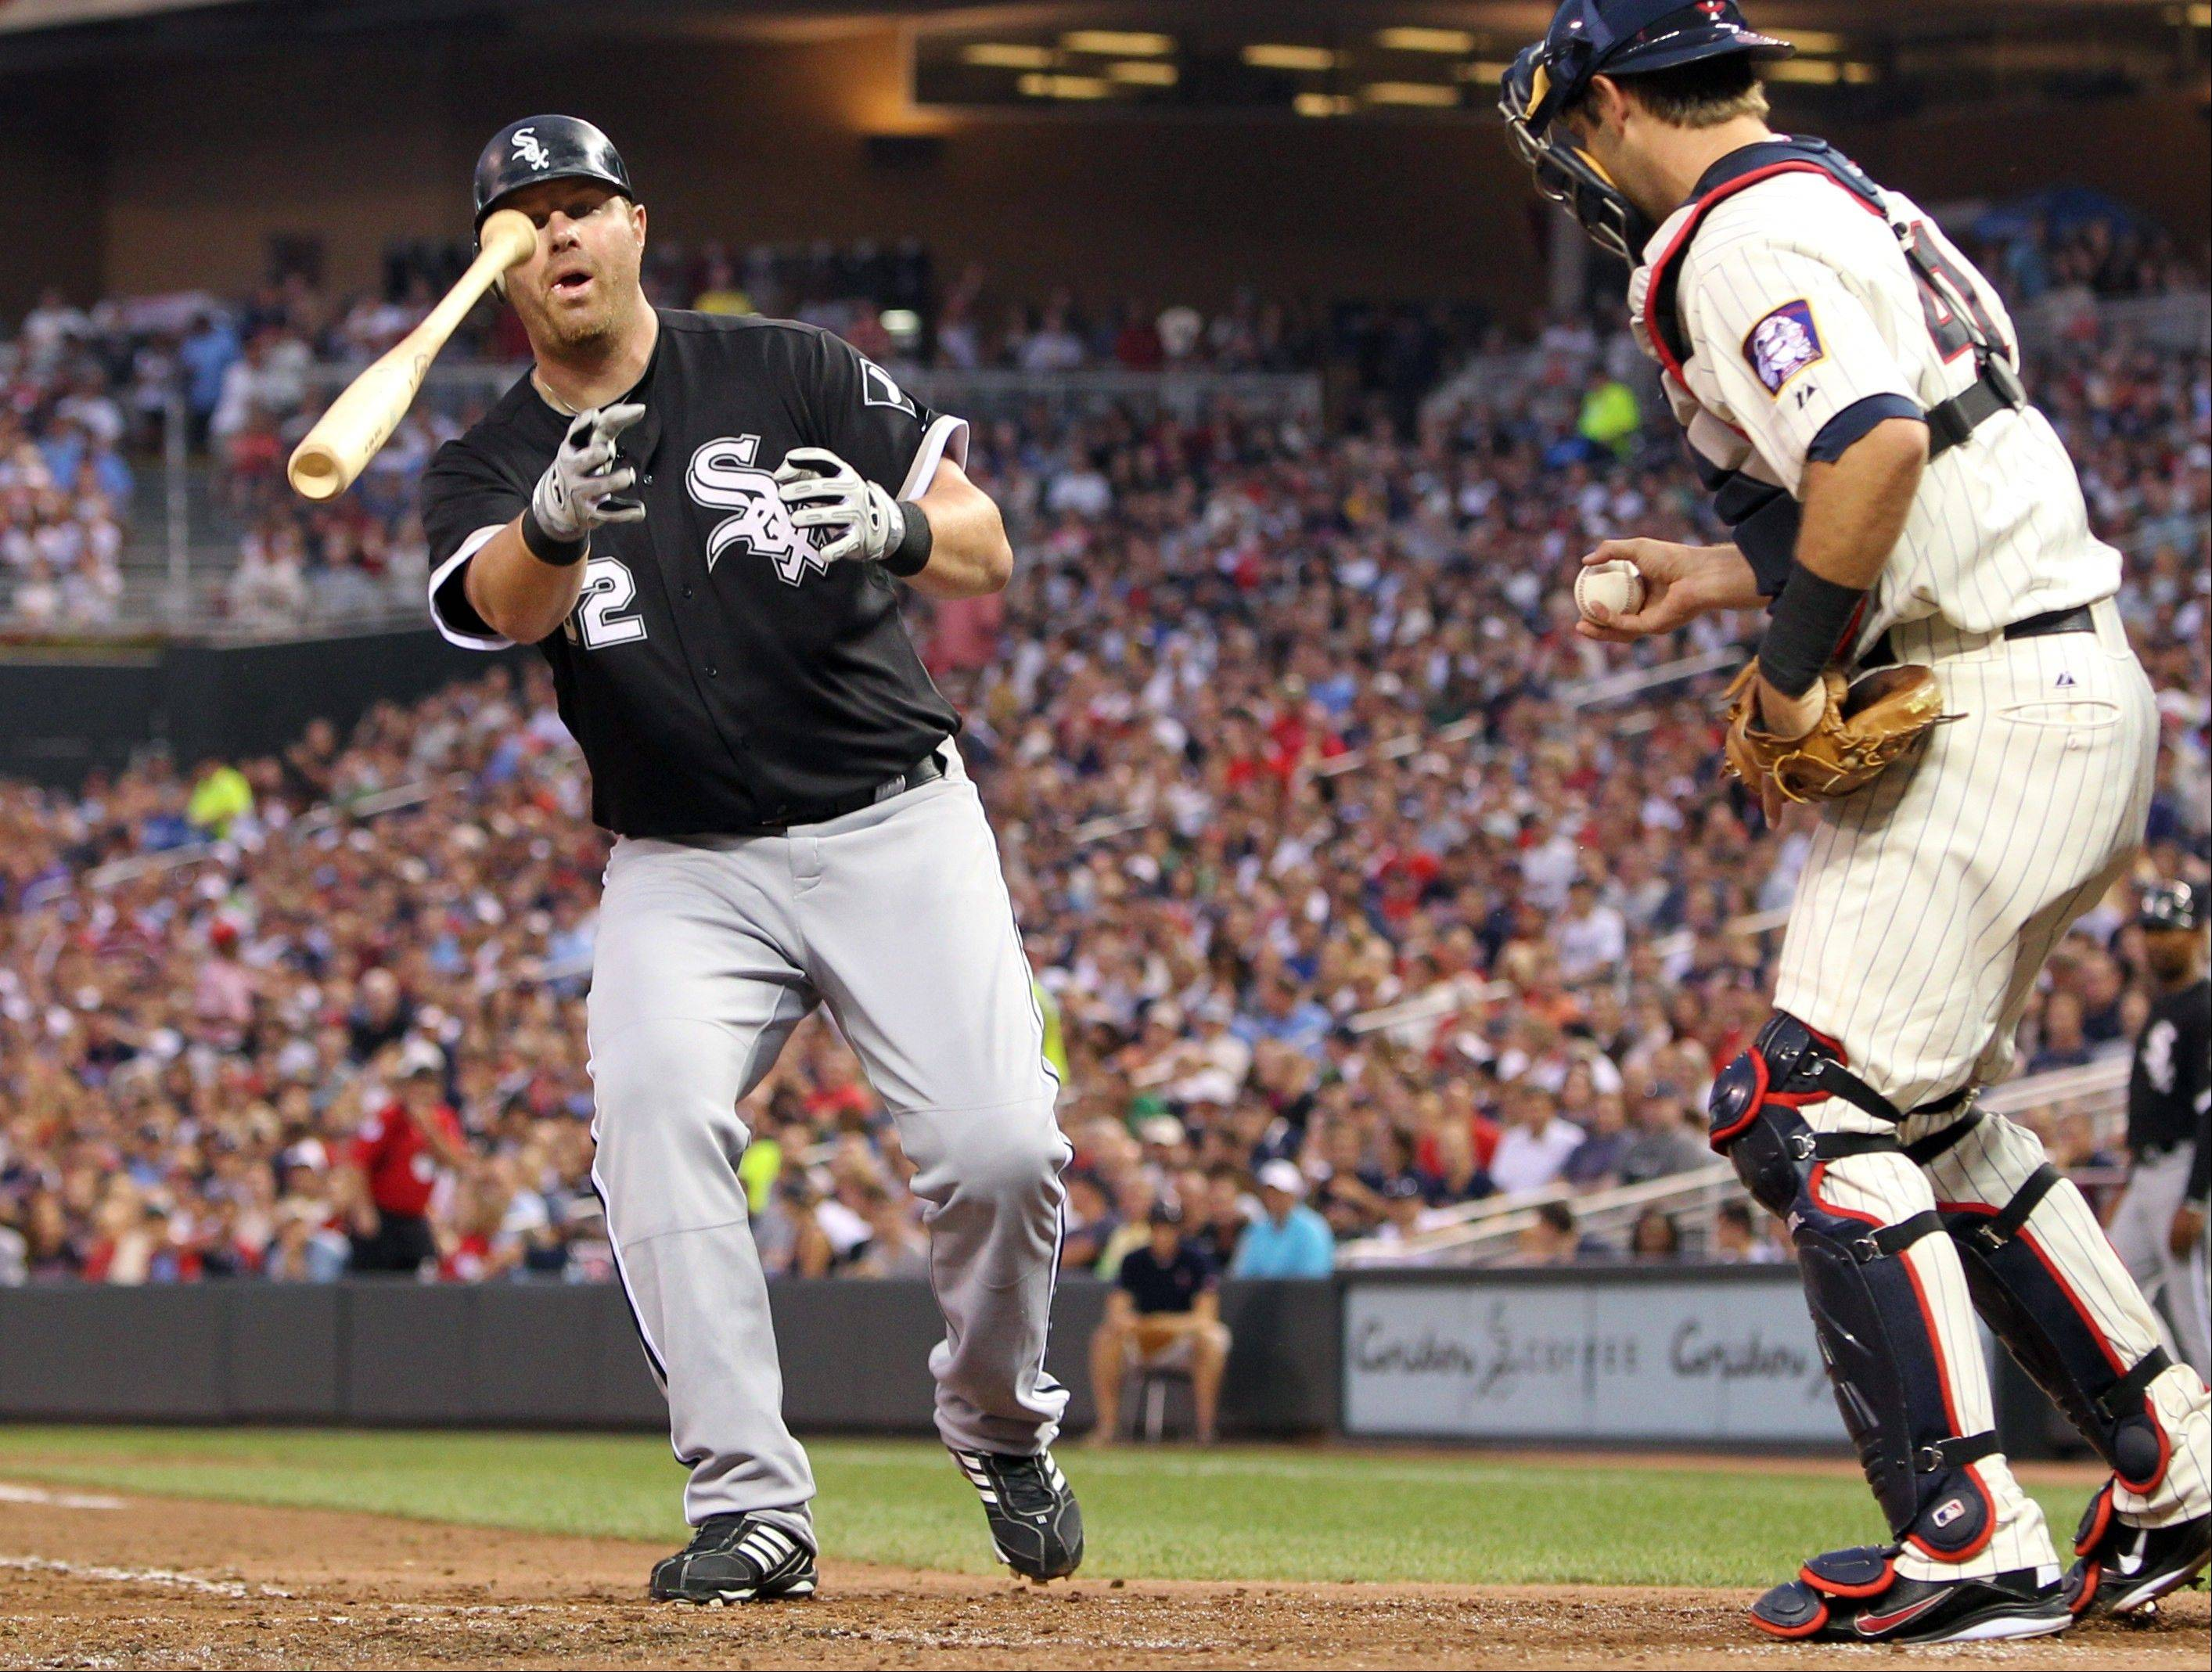 Adam Dunn tosses his bat after drawing 1 of 7 walks by White Sox hitters Friday. Dunn scored on Carlos Quentin's 2-run homer in the fifth inning.